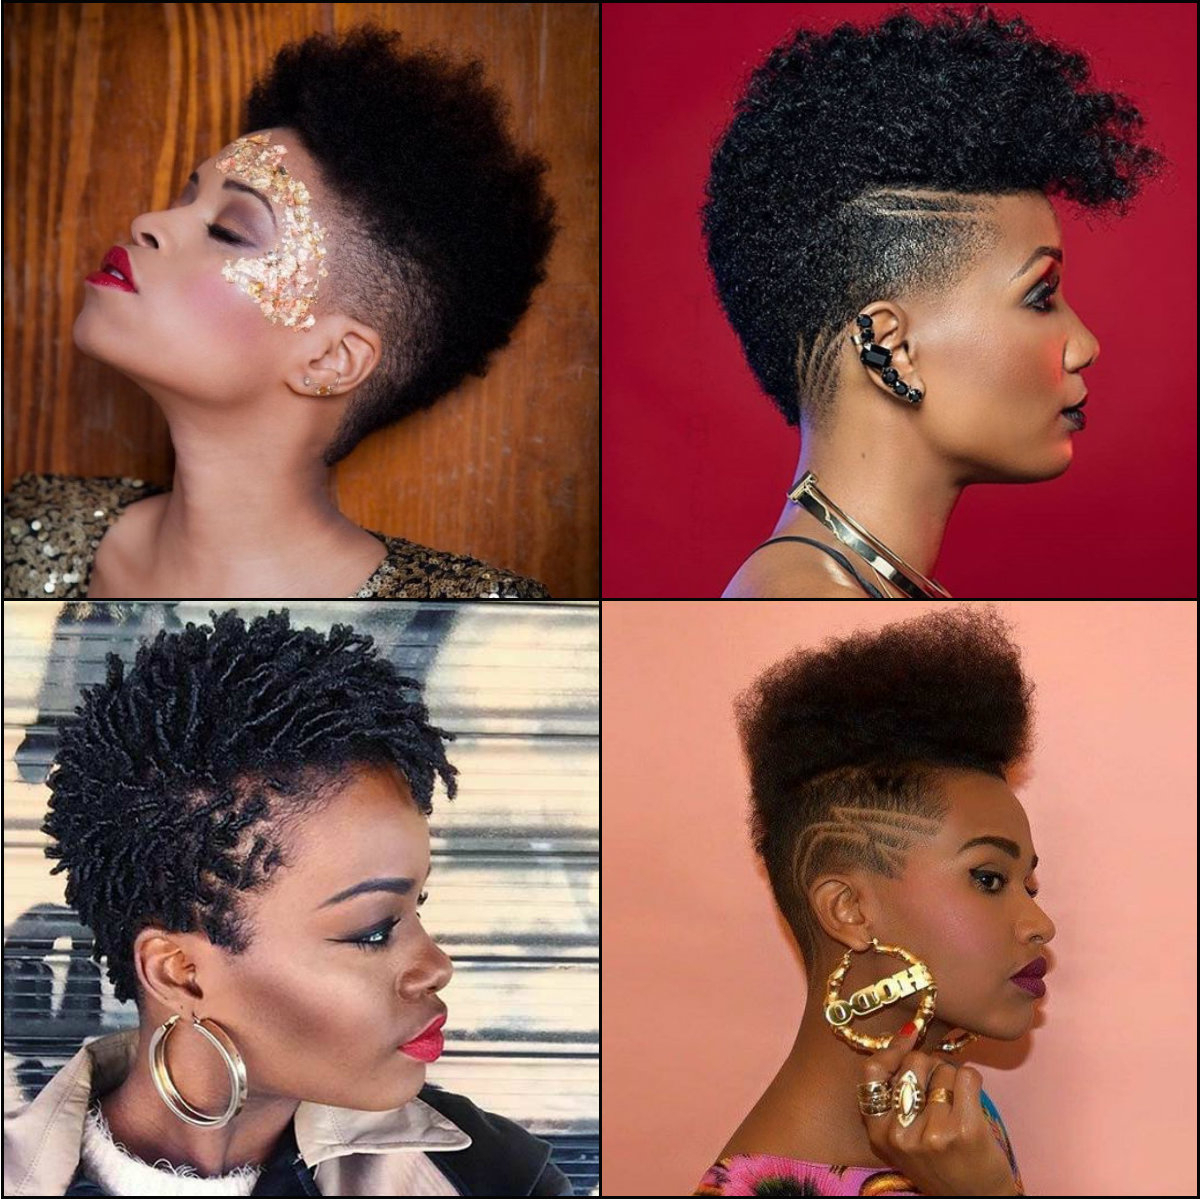 Black Women Fade Haircuts To Look Edgy And Sexy   Hairstyles 2017 For Sexy Short Haircuts For Black Women (View 9 of 25)